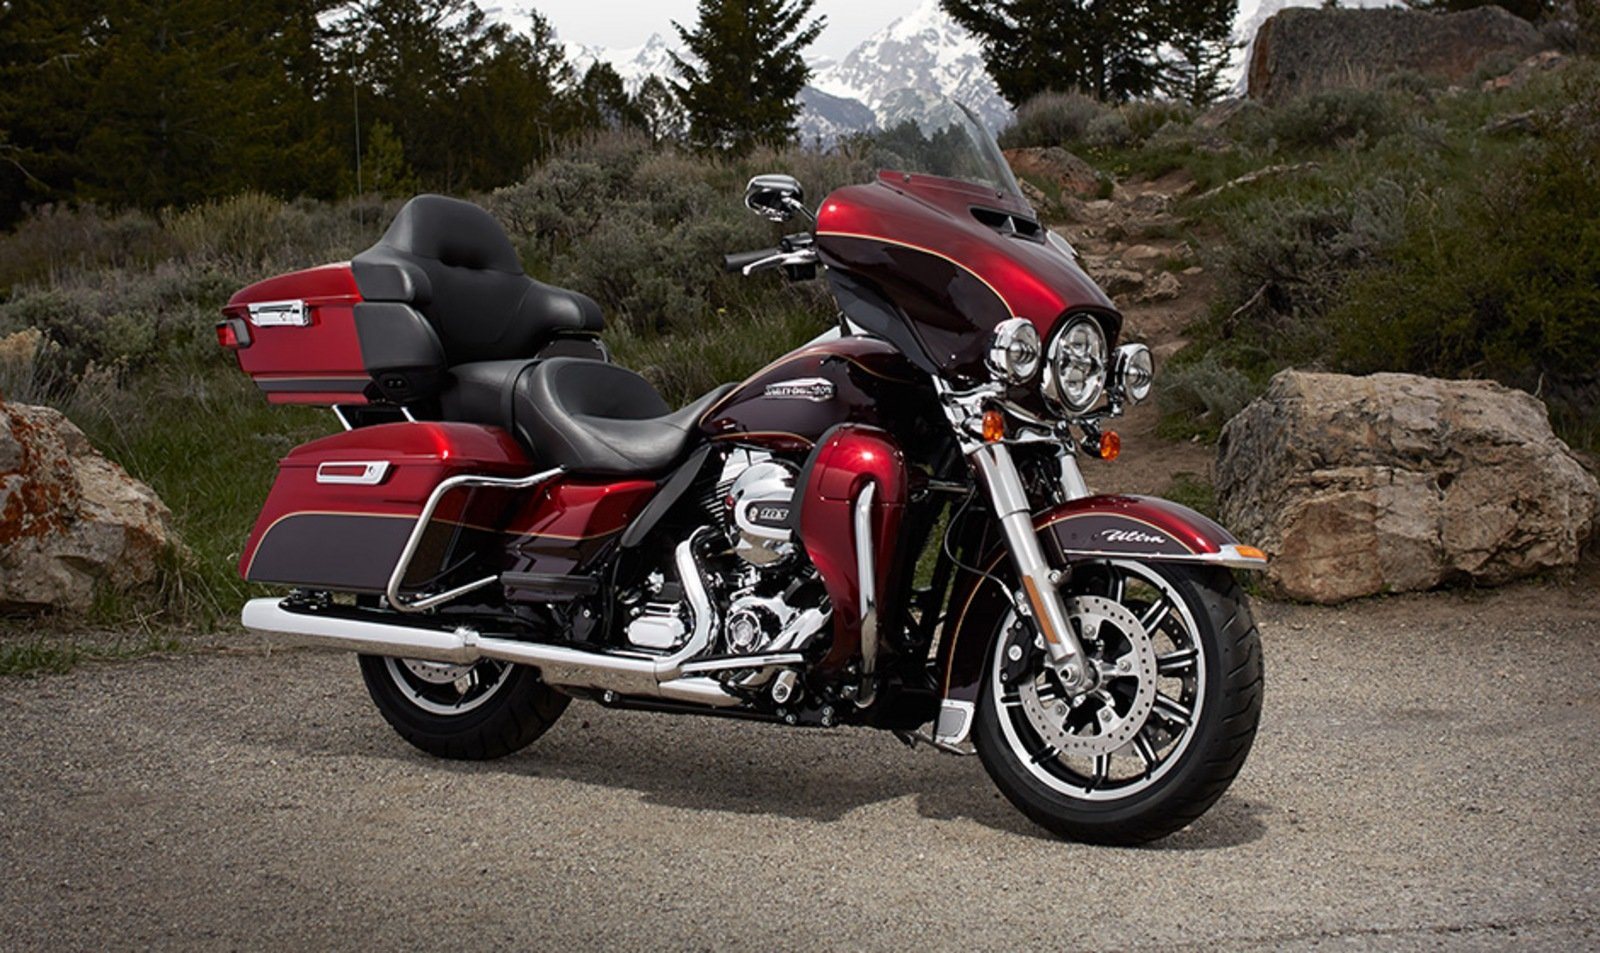 Harley Davidson Electra Glide News And Reviews Top Speed 2014 Ultra Limited Wiring Diagram Classic